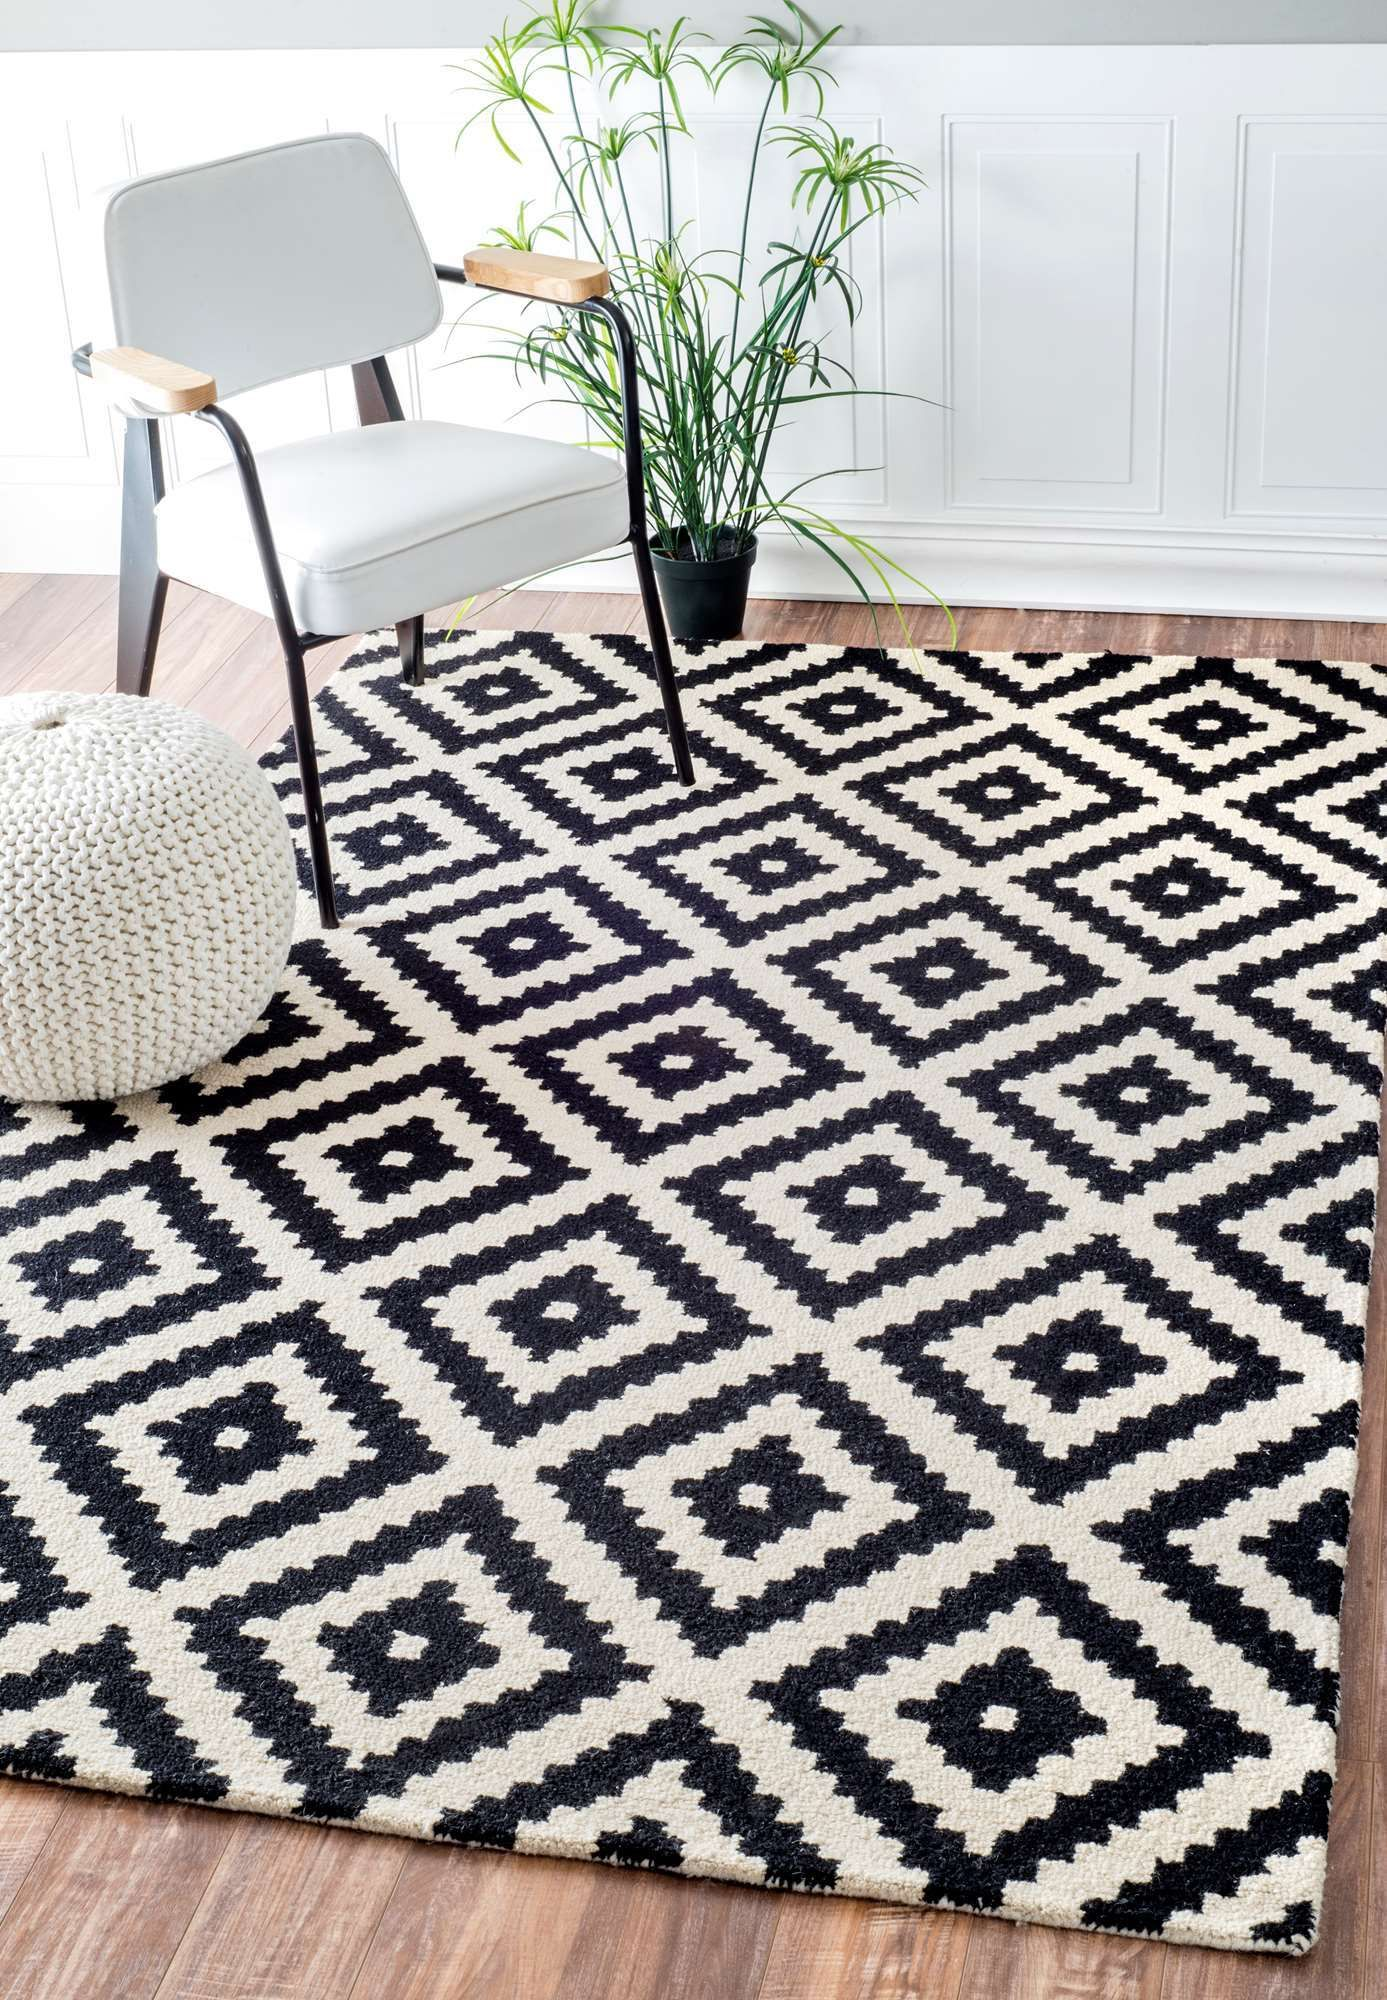 The Best Place To Buy Rugs With Images Black Area Rugs